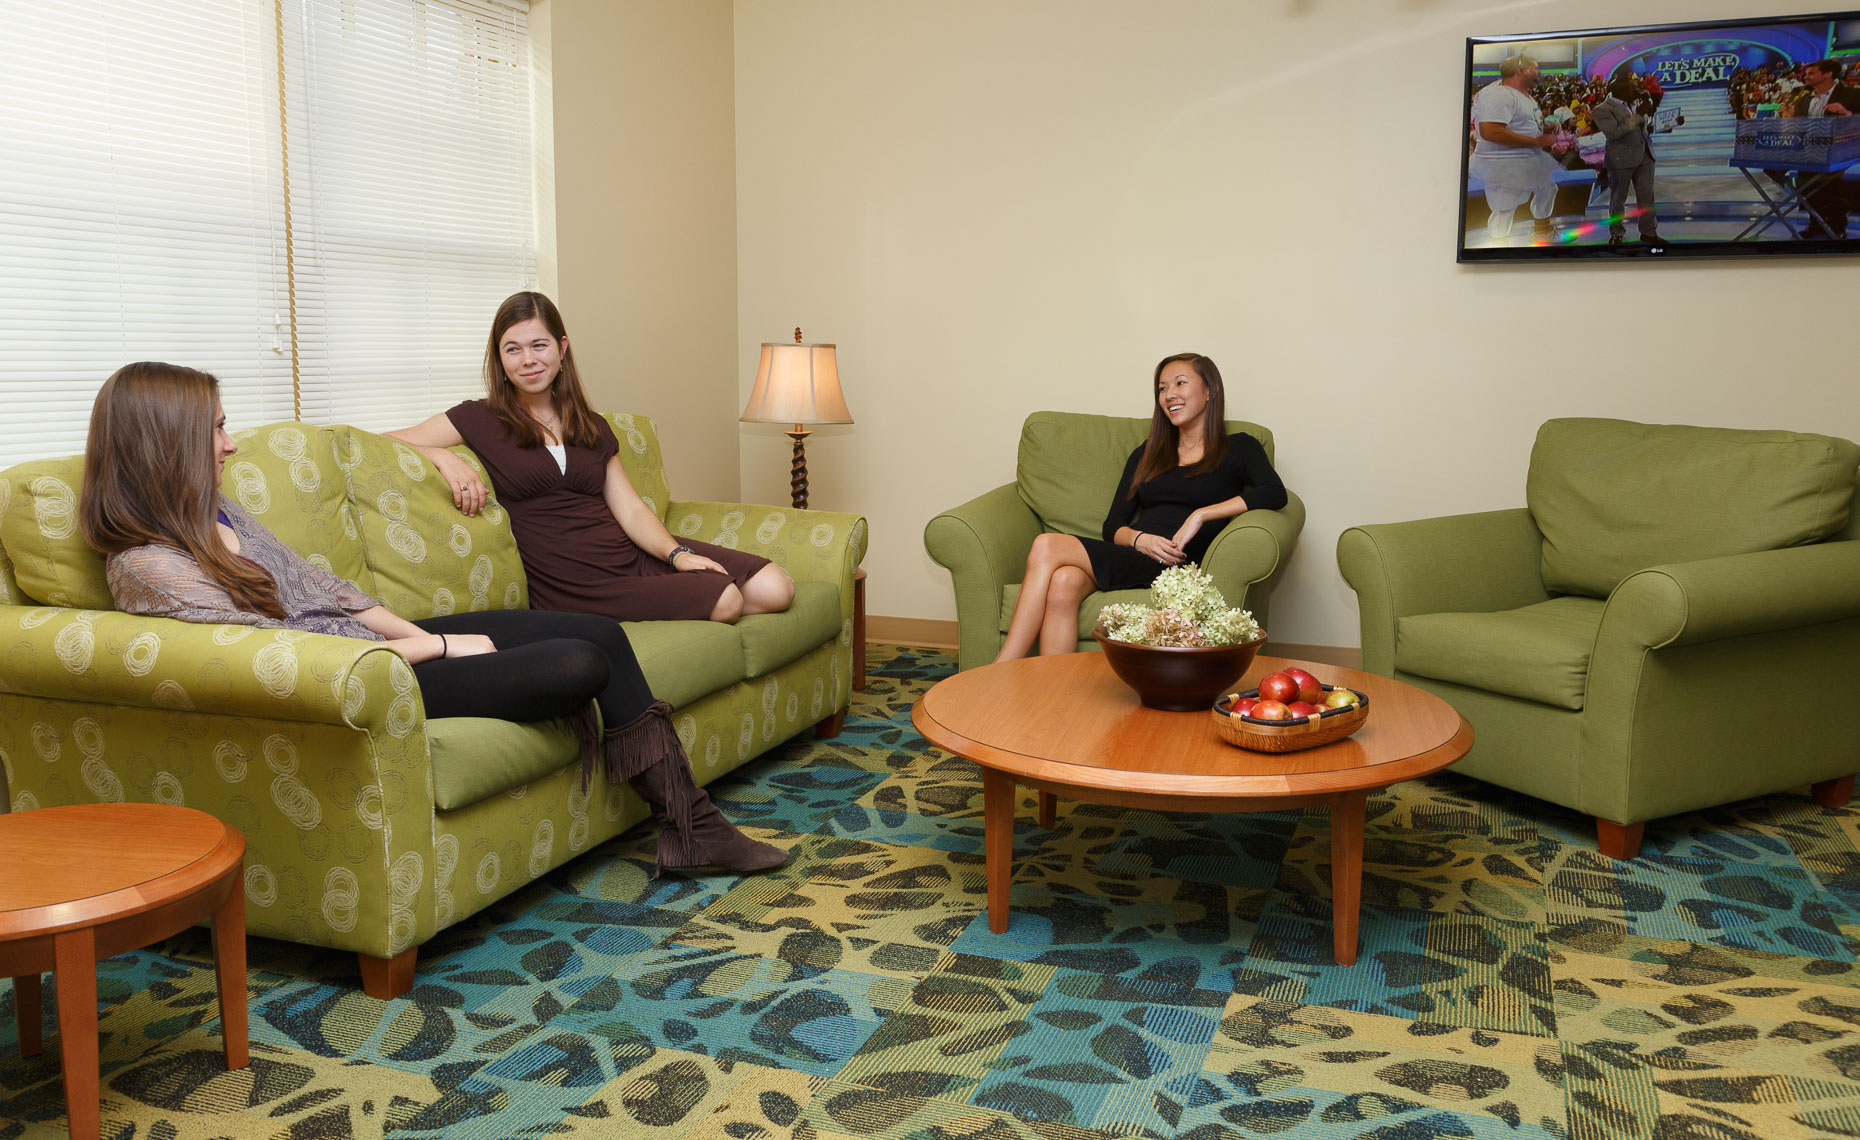 Virginia Hamrick Photography - University Student Housing Lounge Area -  Academia